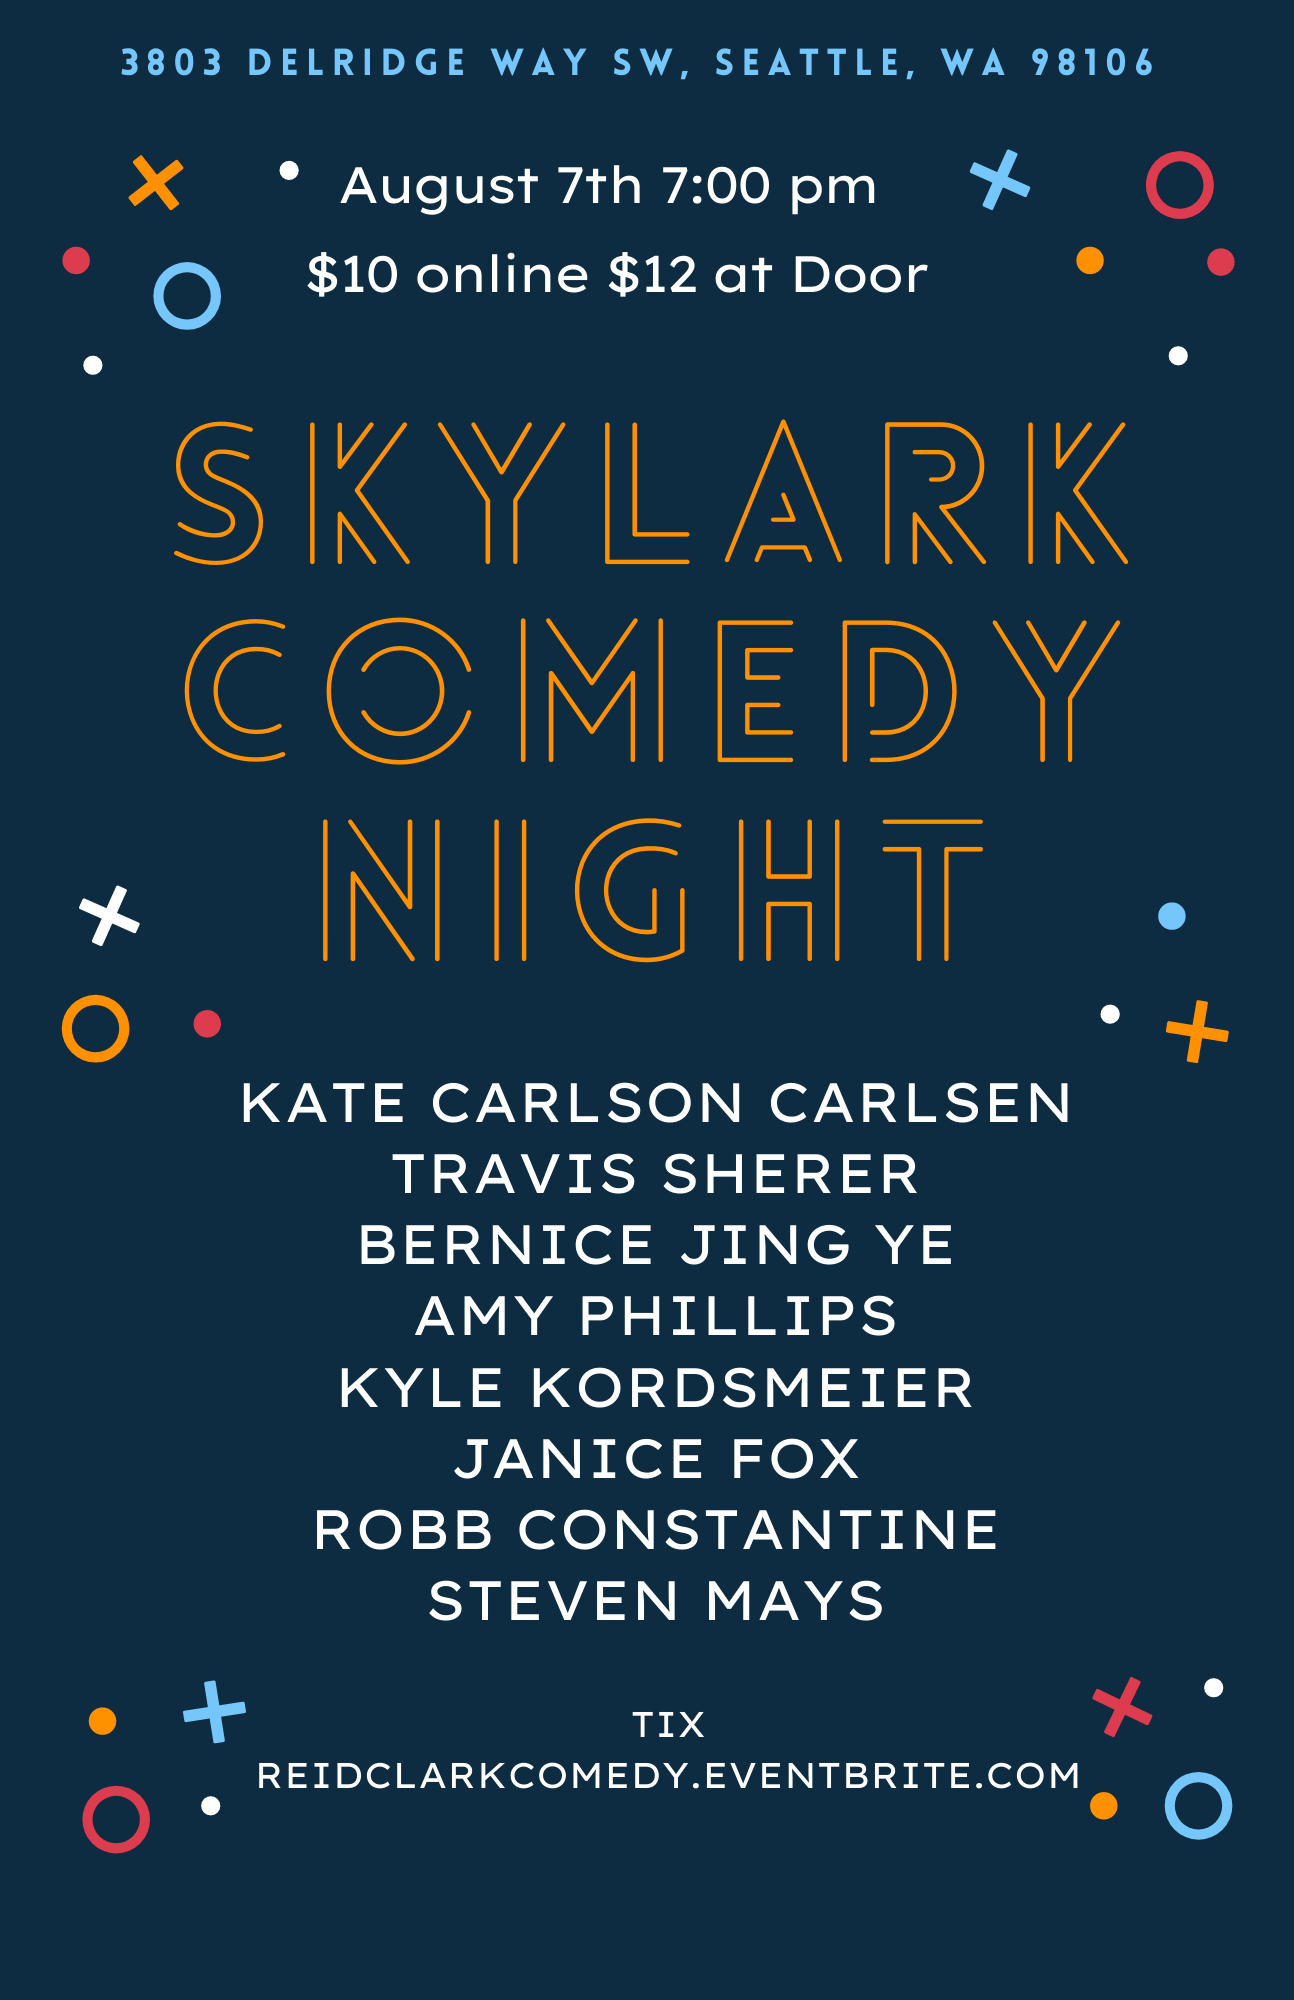 Stand up comedy show with comedians from Netflix, BET, Prime Video etc. Join host Reid Clark at Skylark Café & Club in West Seattle for a night of stand up comedy. $10 online $12 at door